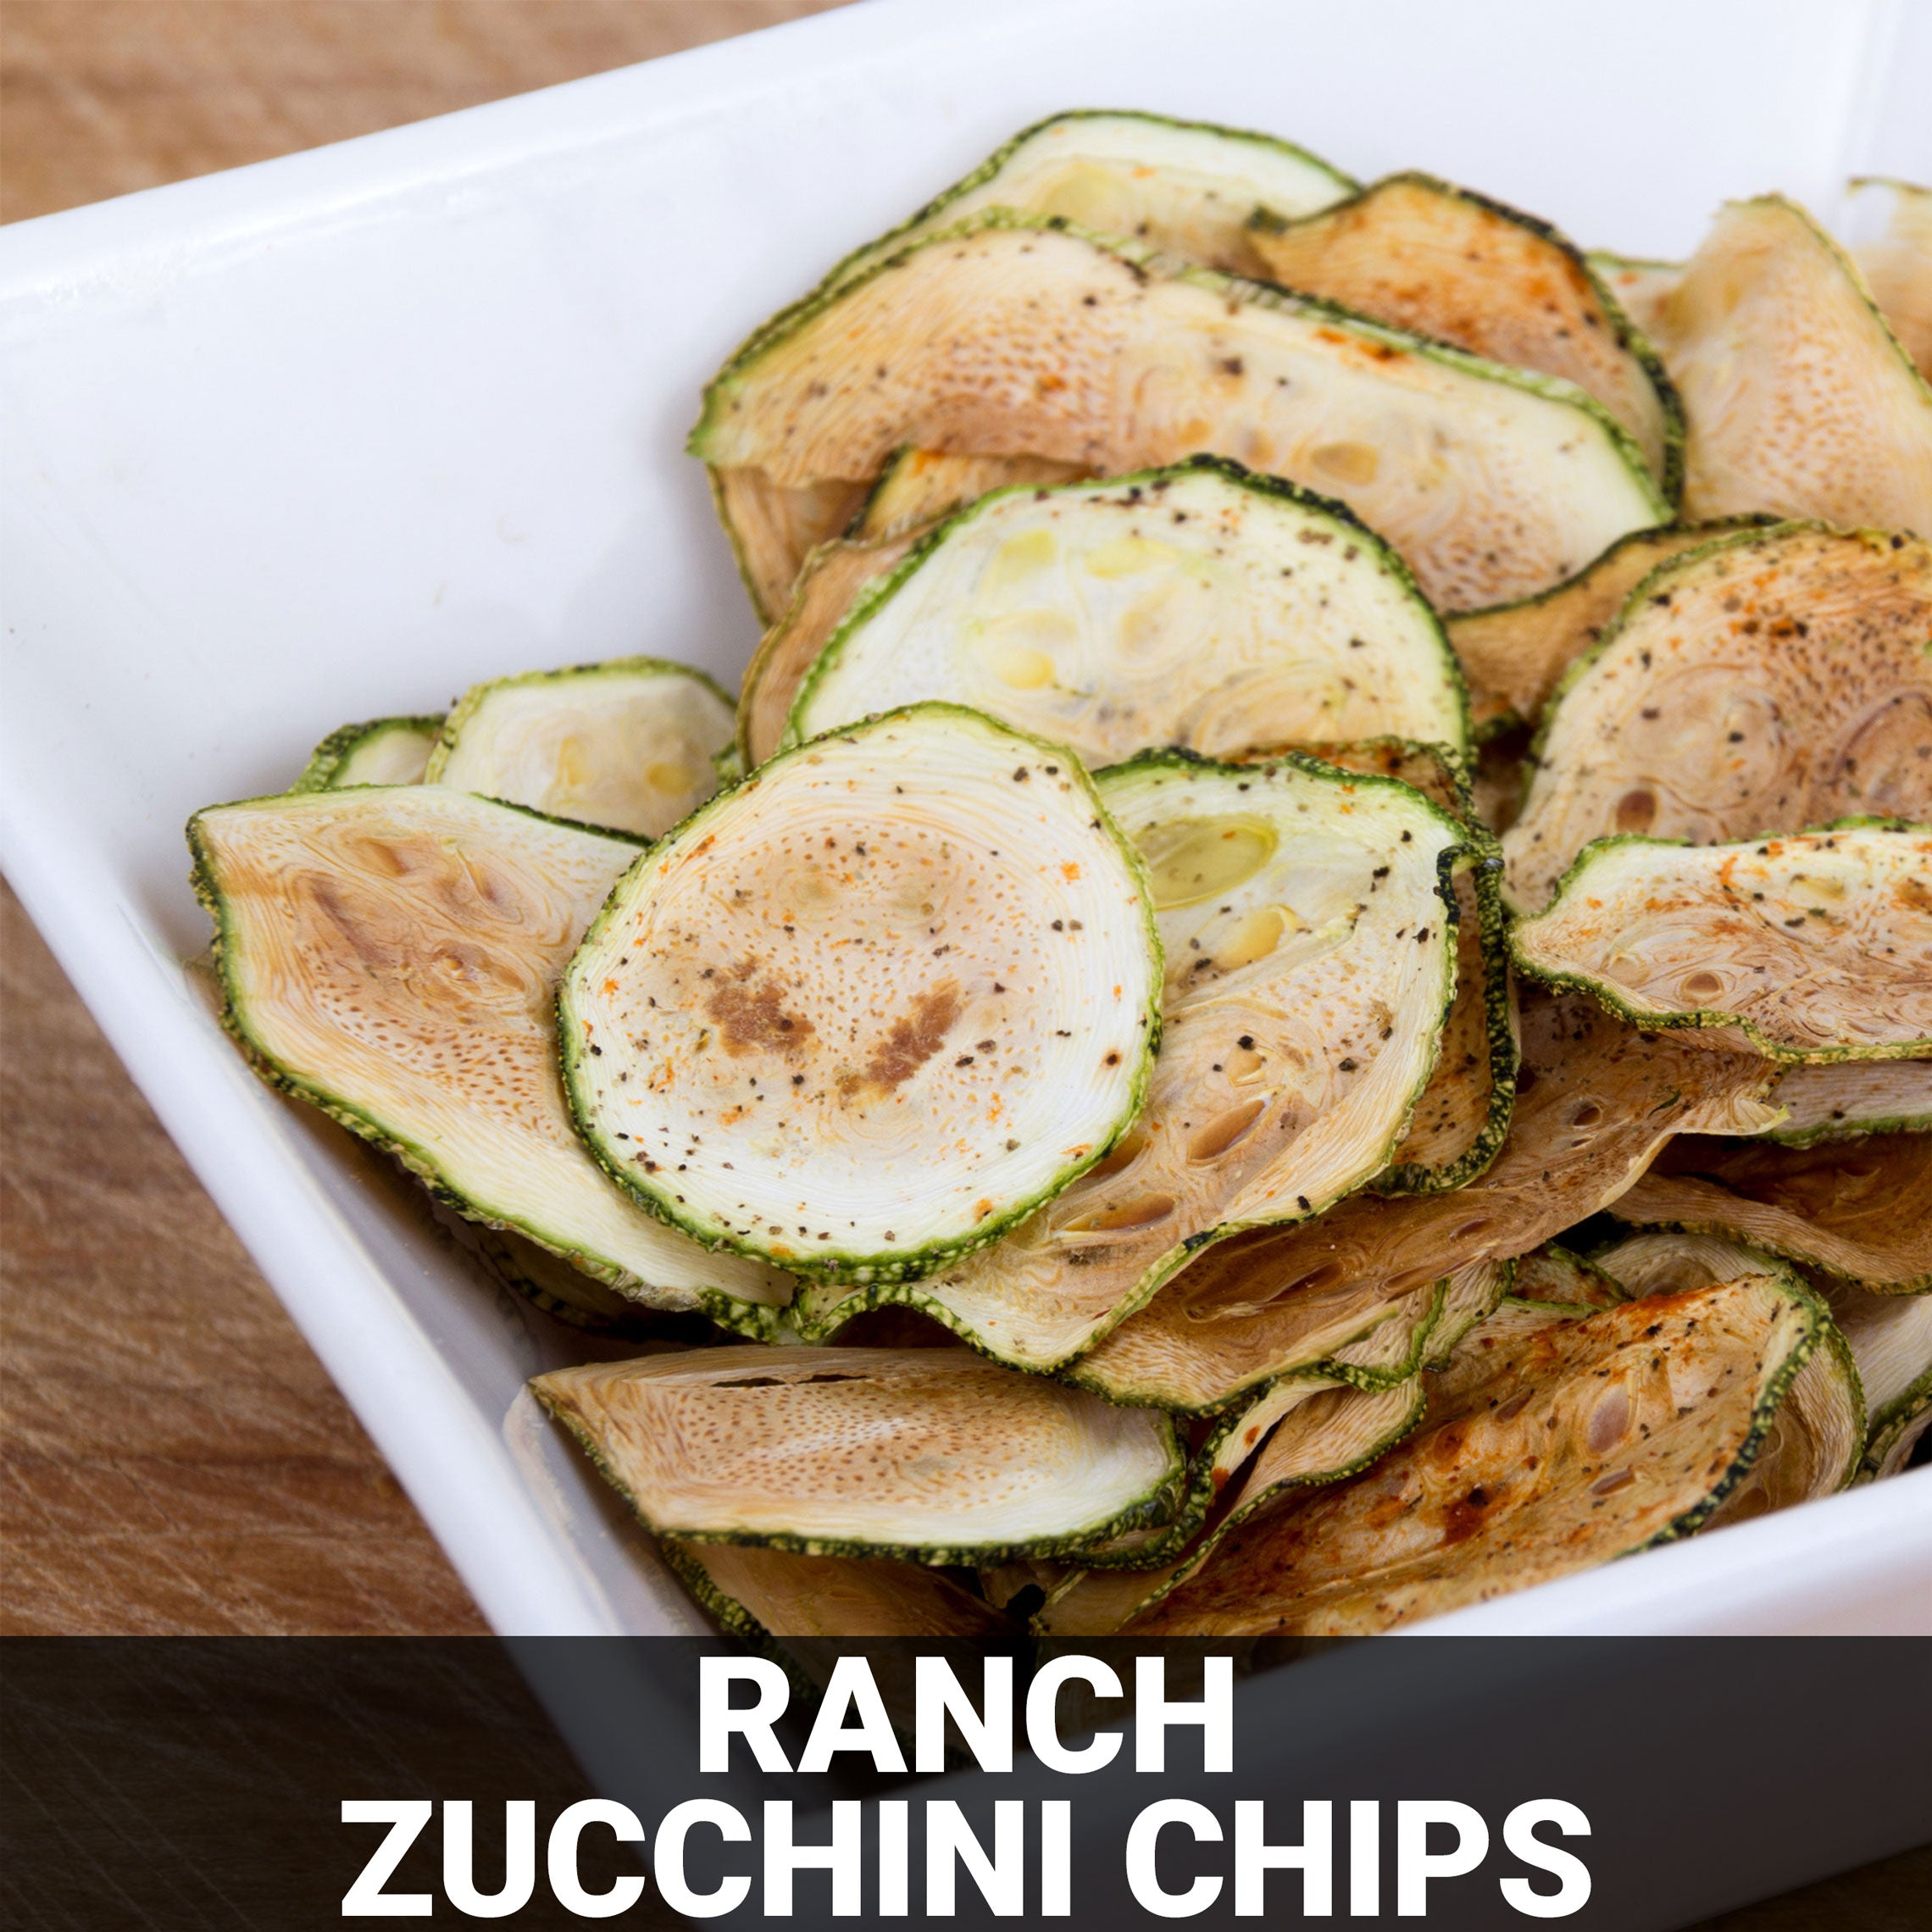 Ranch Zucchini Chips Recipe - Foods Alive